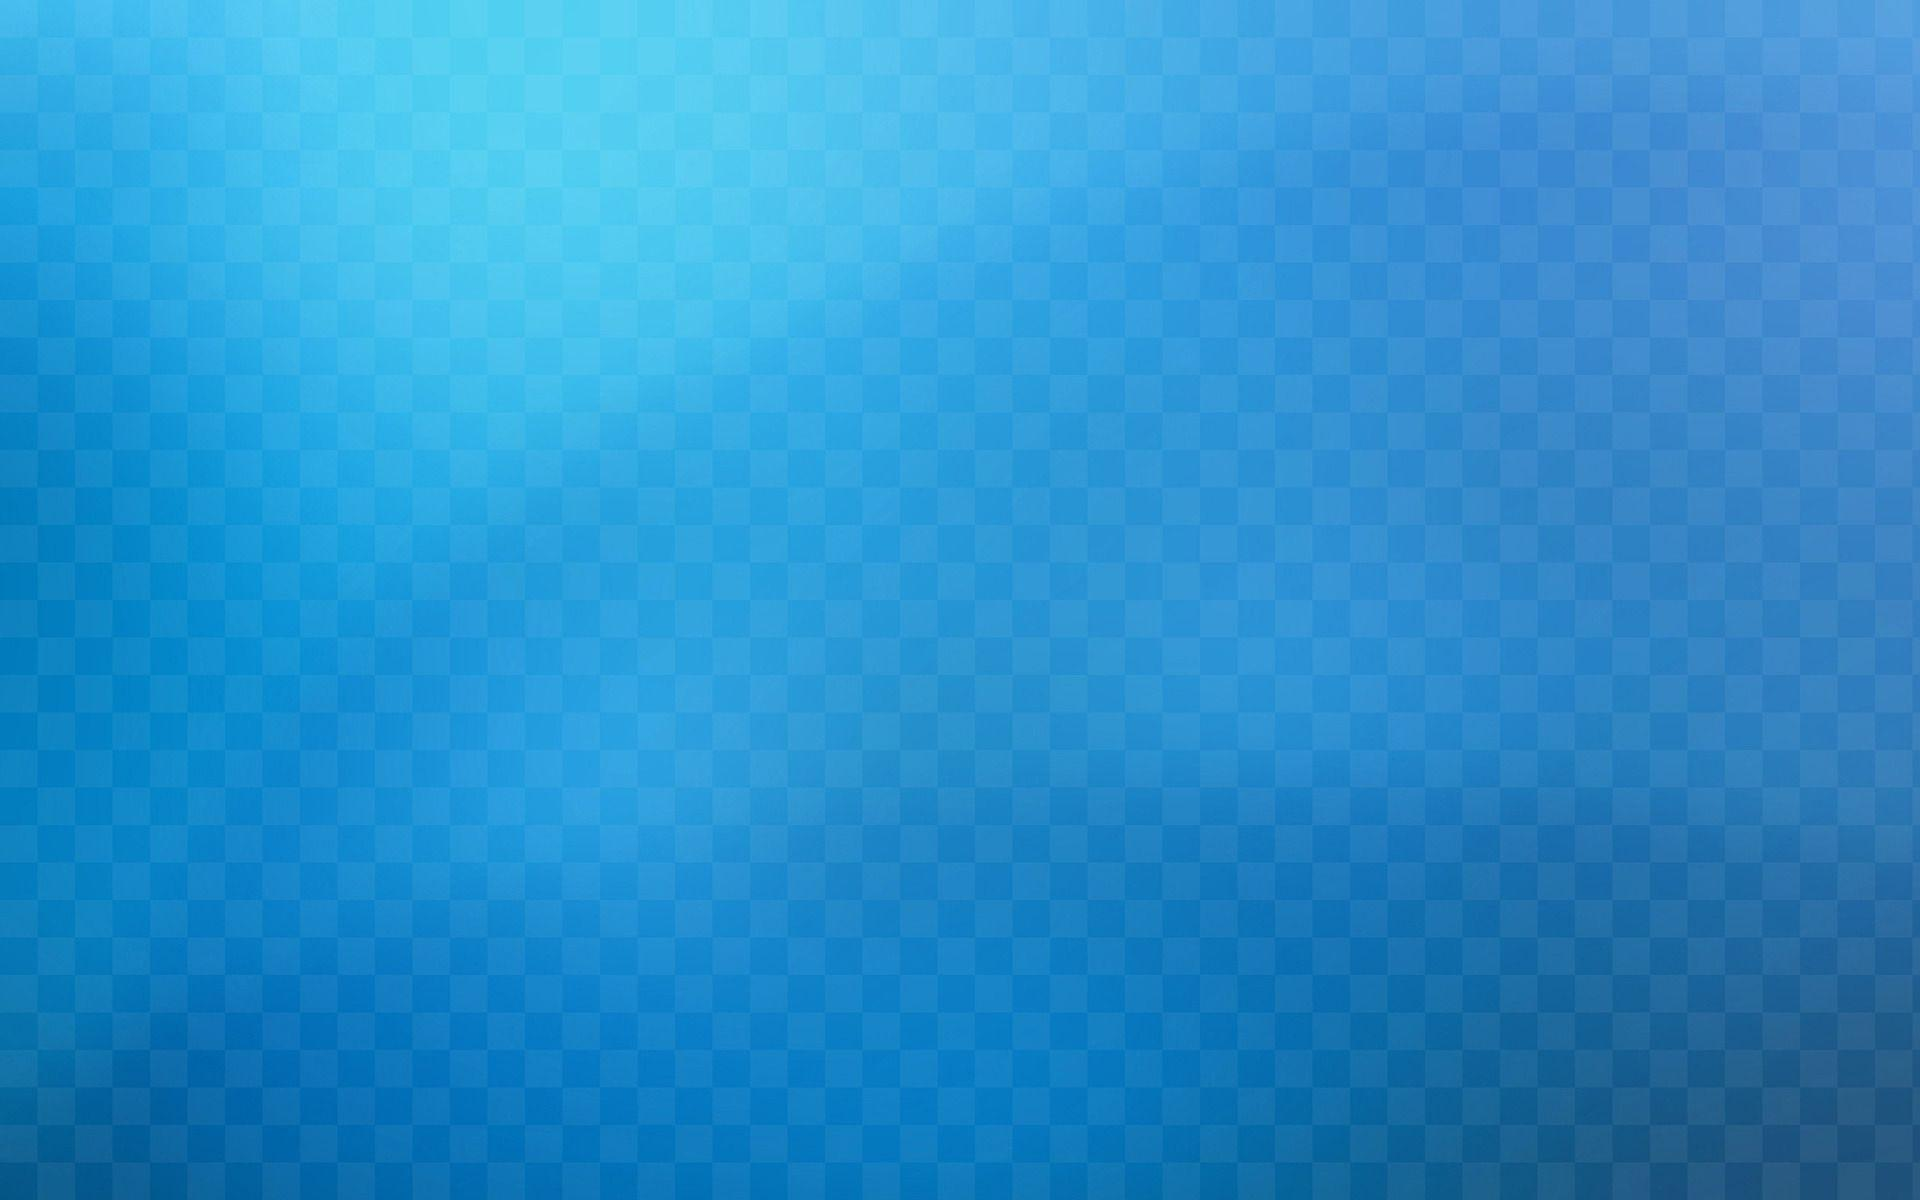 Light blue square pattern backgrounds #3753